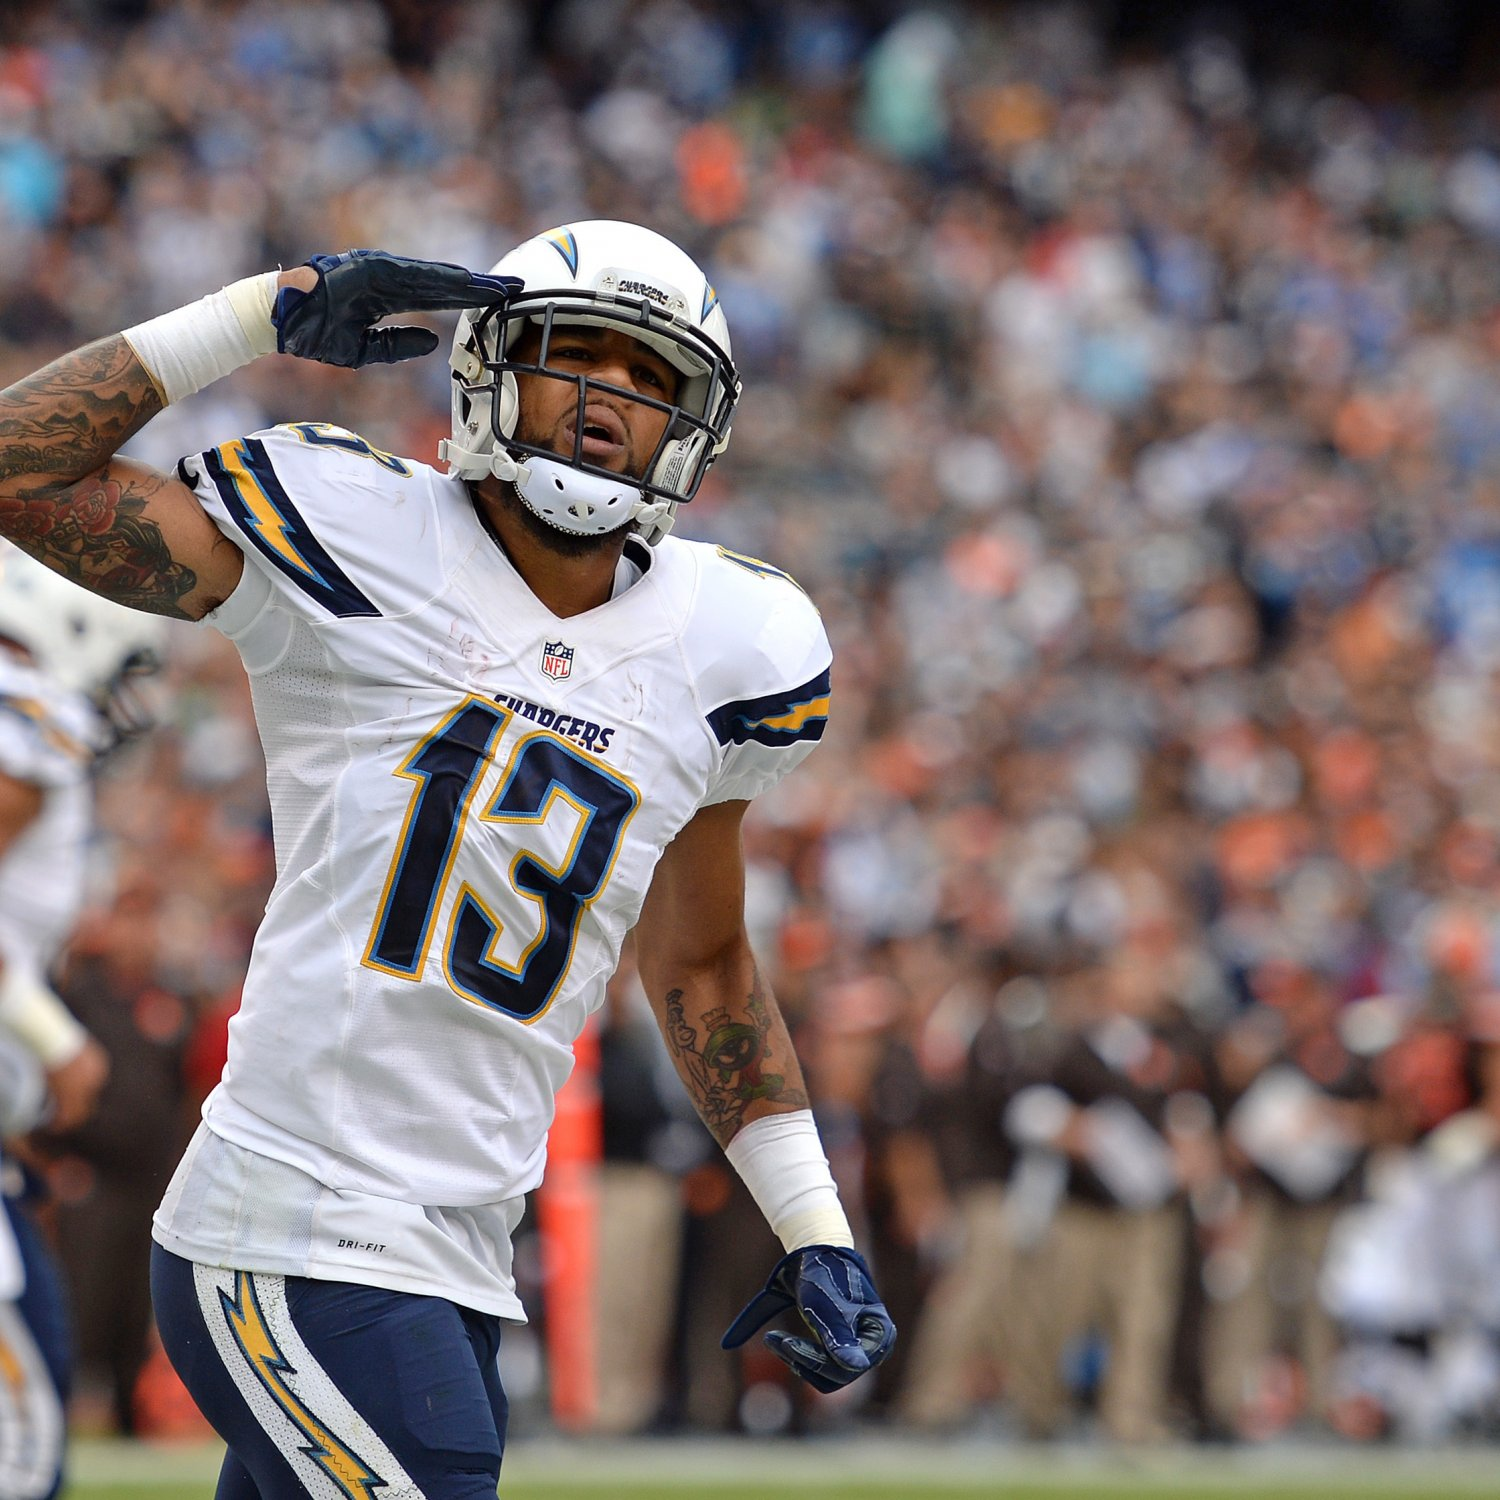 Mike Mccoy Chargers Agree To New Contract Latest Details: Keenan Allen, Chargers Agree To New Contract: Latest